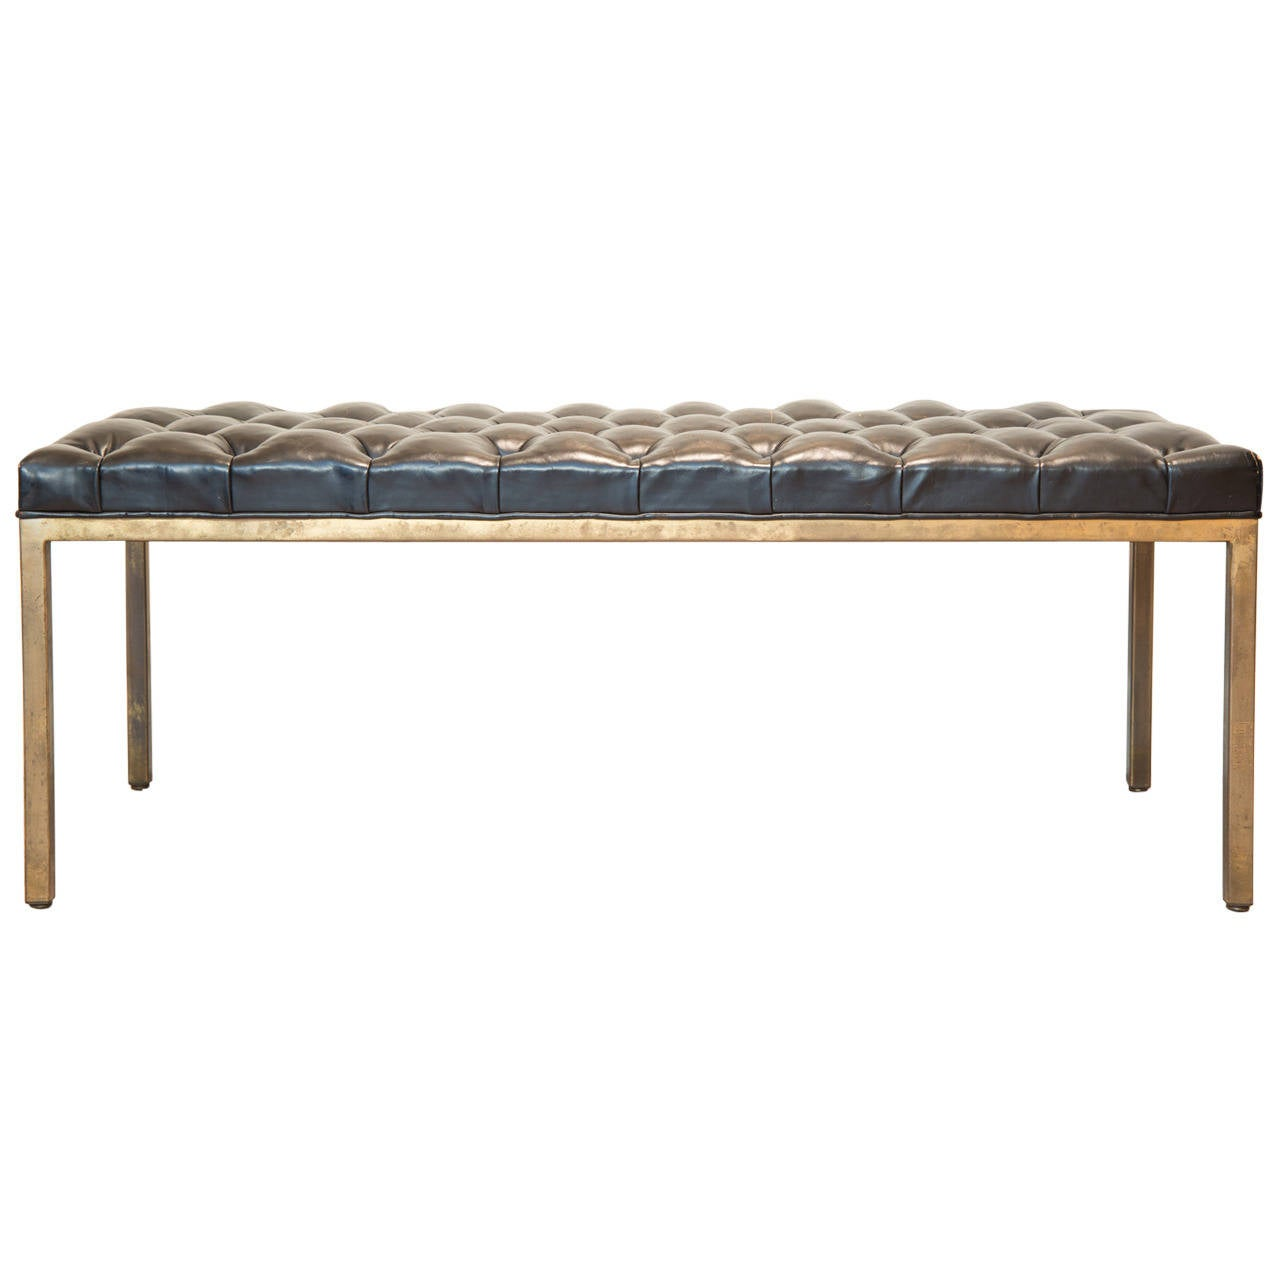 Mid Century Brass And Tufted Black Leather Bench Circa 1970 At 1stdibs